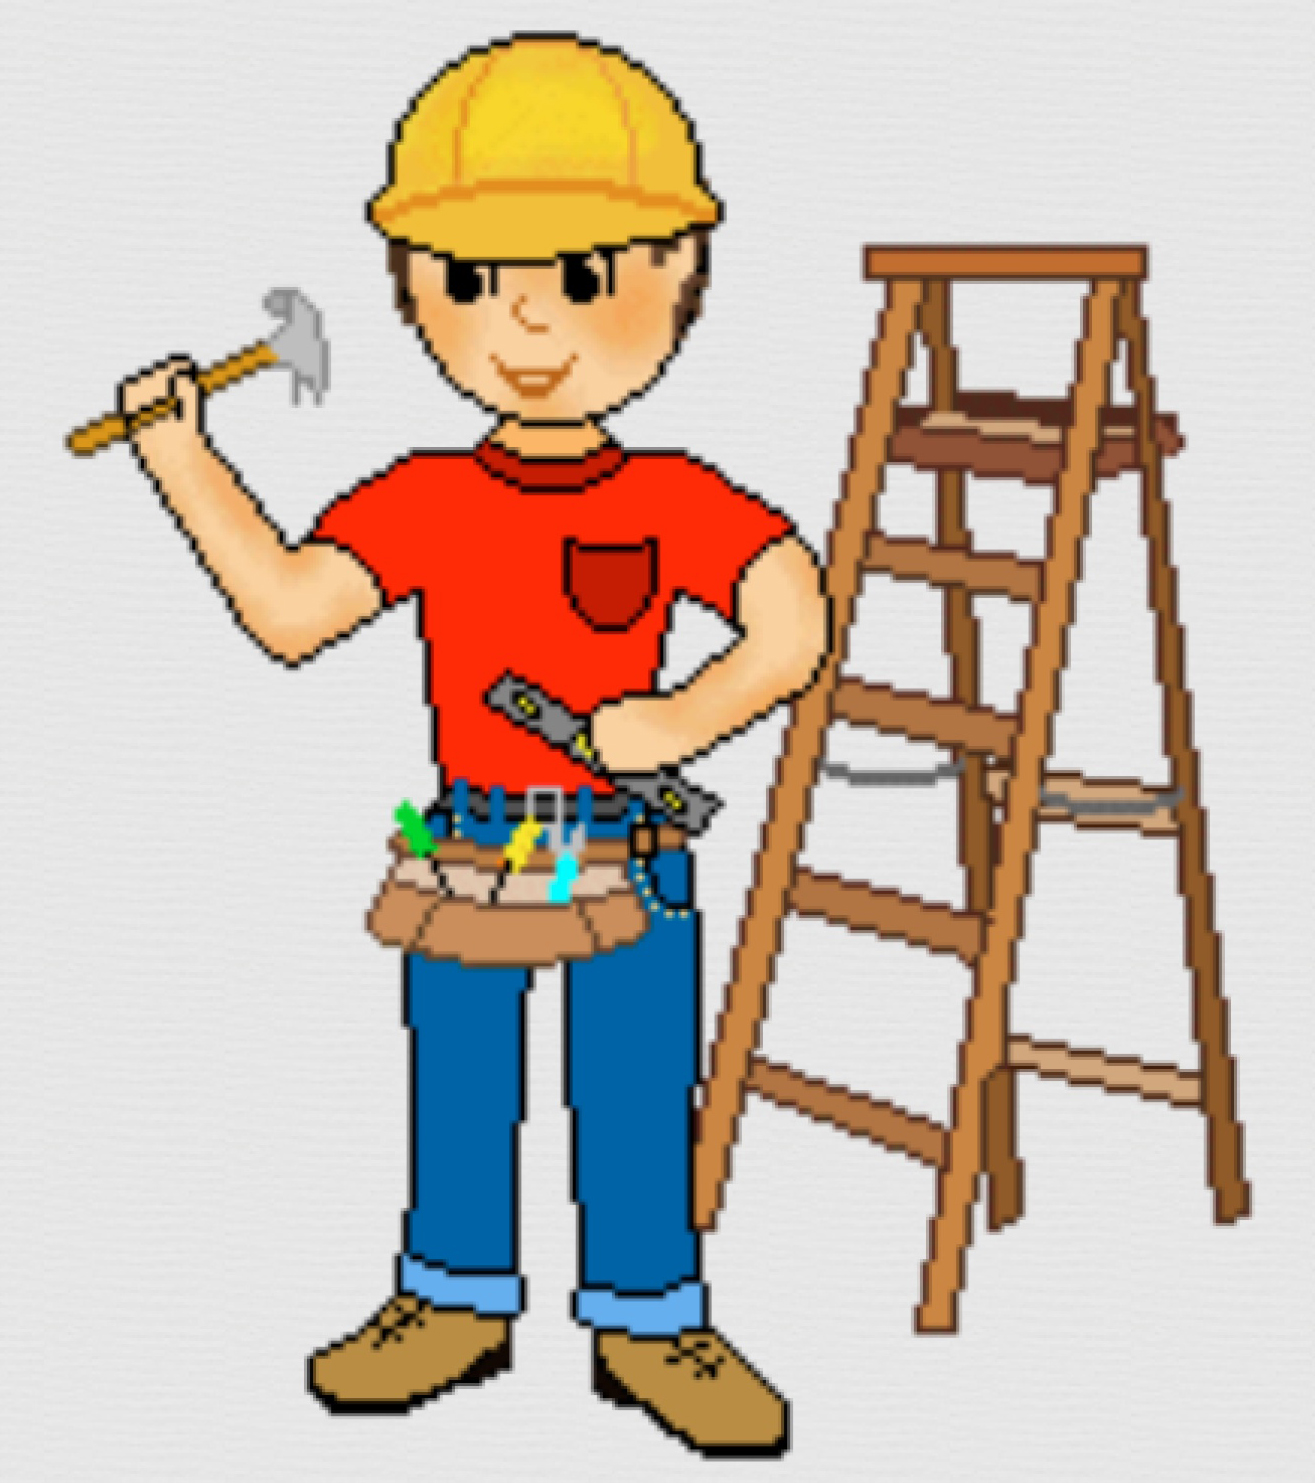 Female Construction Worker Clipart | Clipart Panda - Free Clipart ...